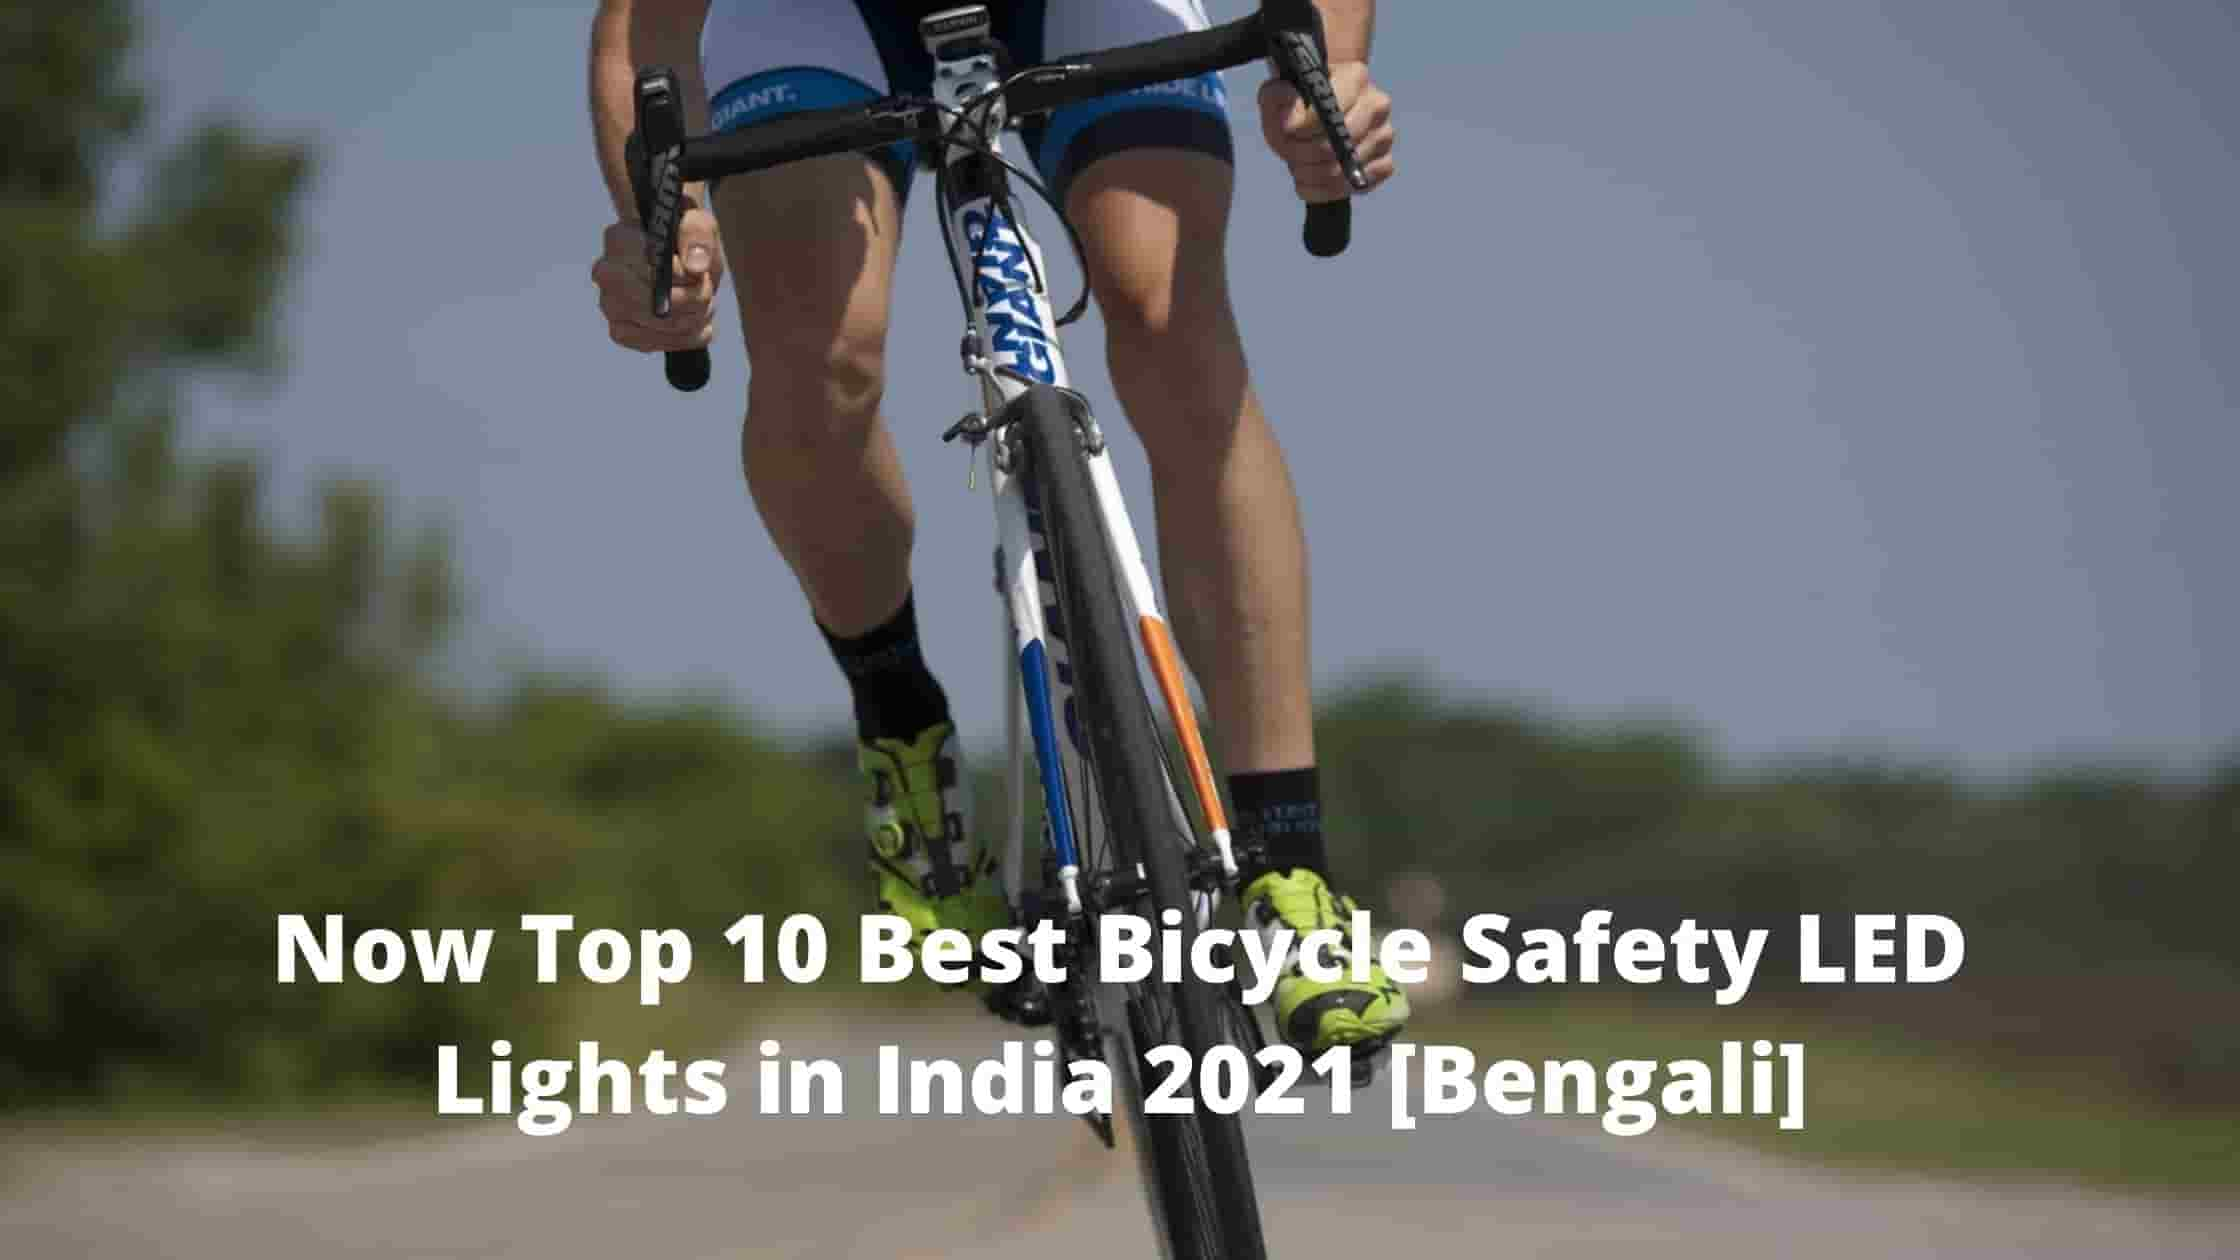 Now Top 10 Best Bicycle Lights in India 2021 [Bengali]